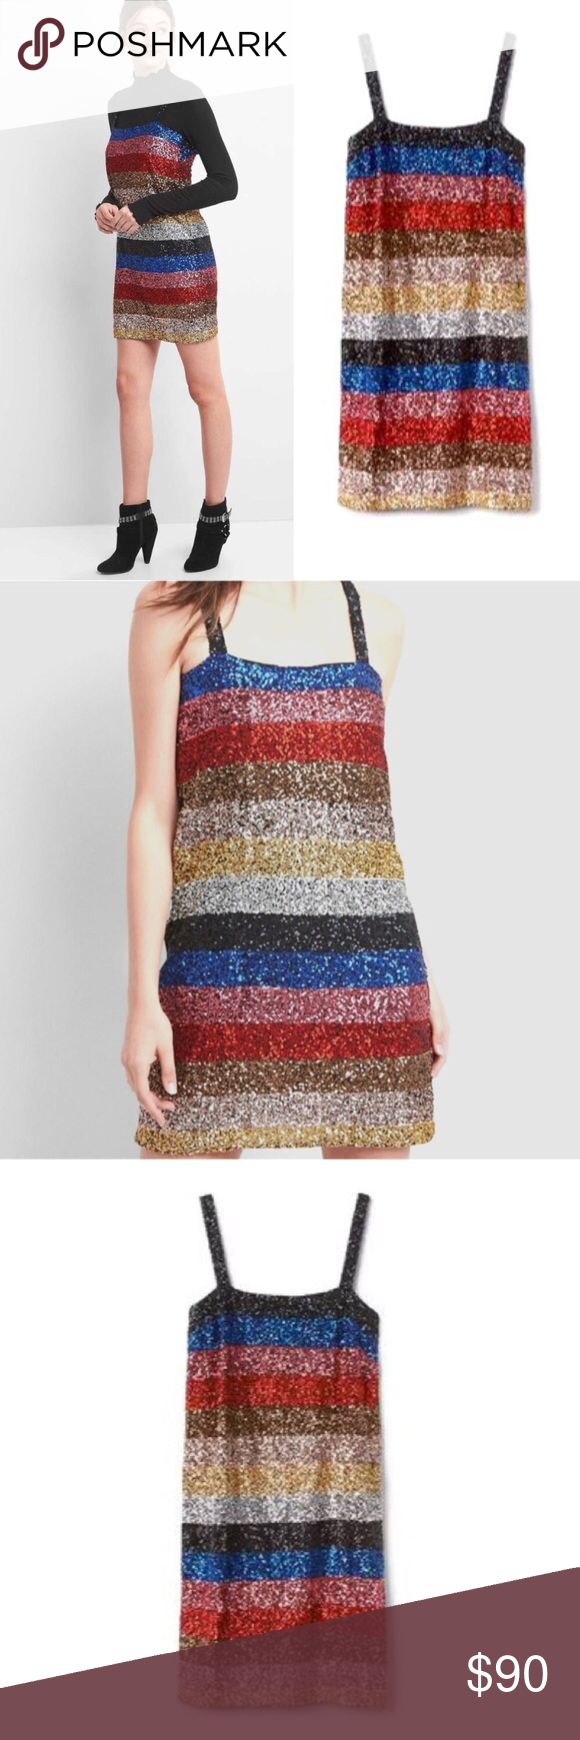 49c62b4b NWT GAP Crazy Stripe Sequin Sleeveless Shift Dress NWT GAP Crazy Stripe  Sequin Shift Dress.